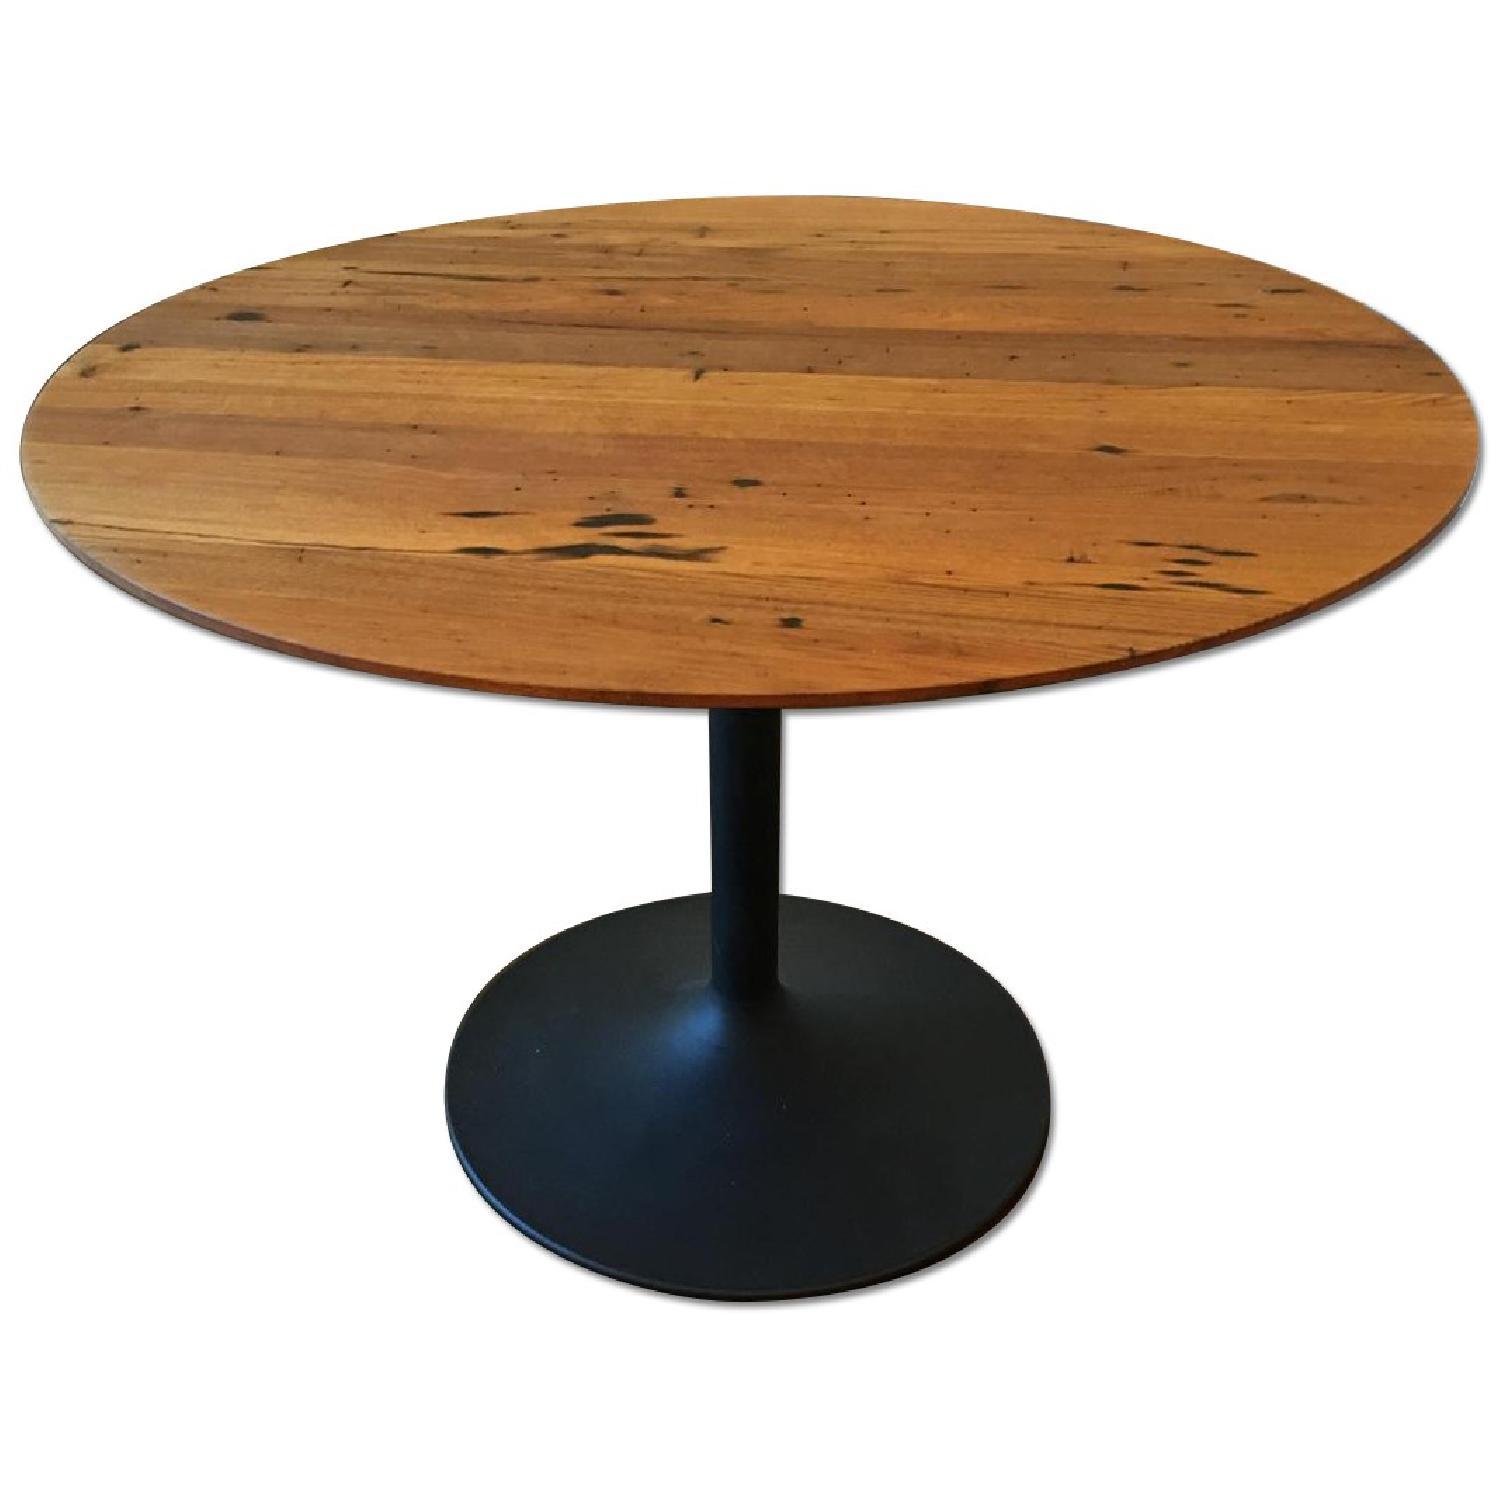 Room & Board Aria Reclaimed Chestnut Wood Dining Table - image-0